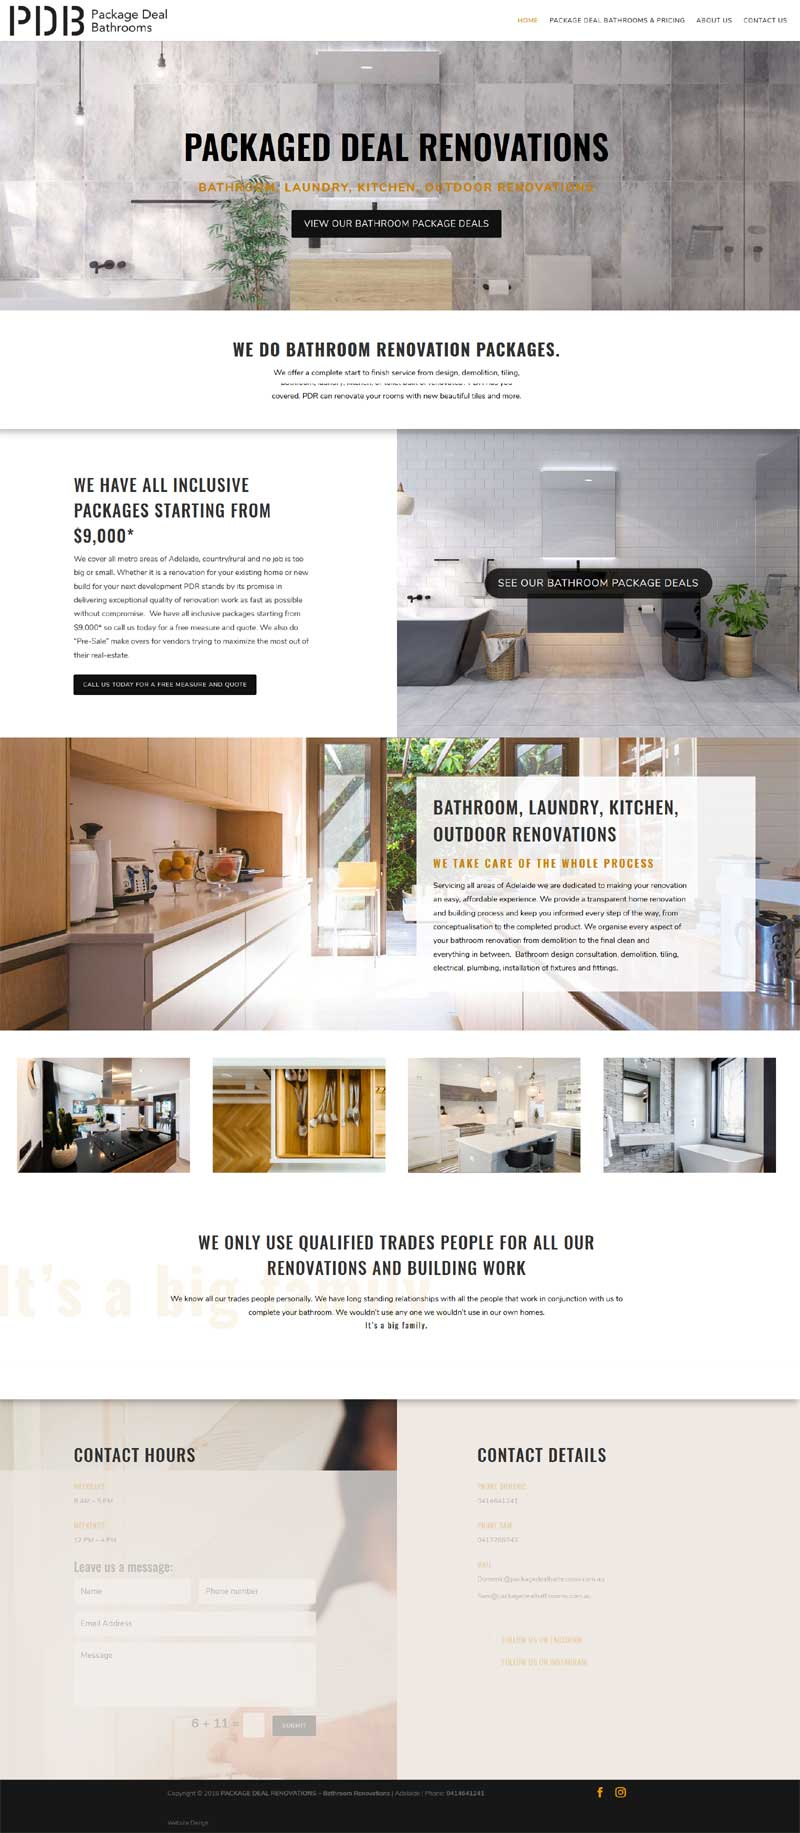 Website design for package deal bathrooms | Website Adelaide